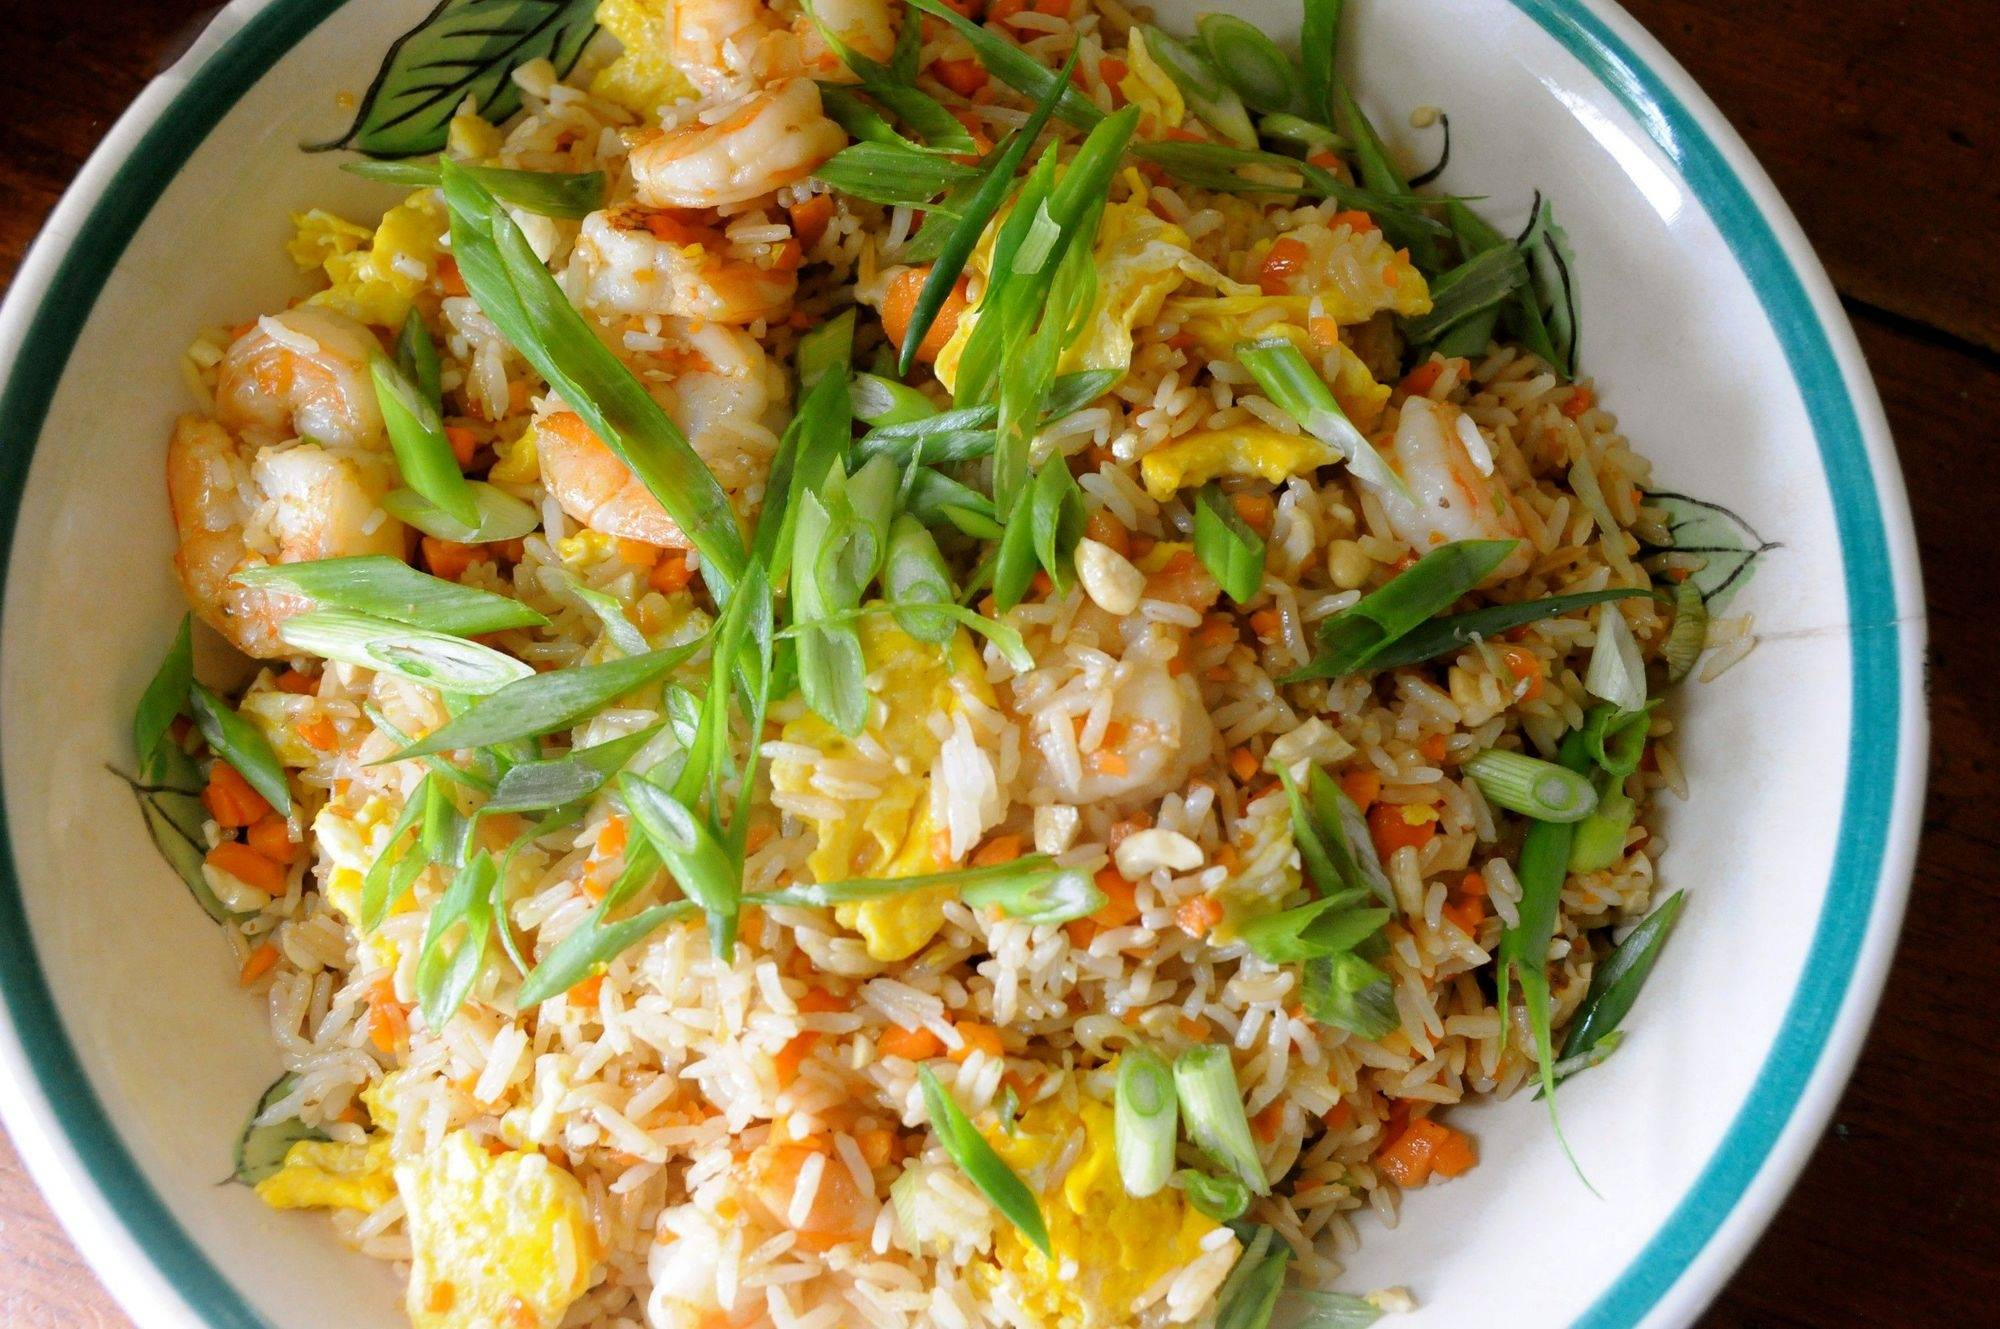 With the right recipe (this one adapted from chef Curtis Stone), fried rice can be a crunchy (not soggy), flavorful (not salty) and delicious dish.